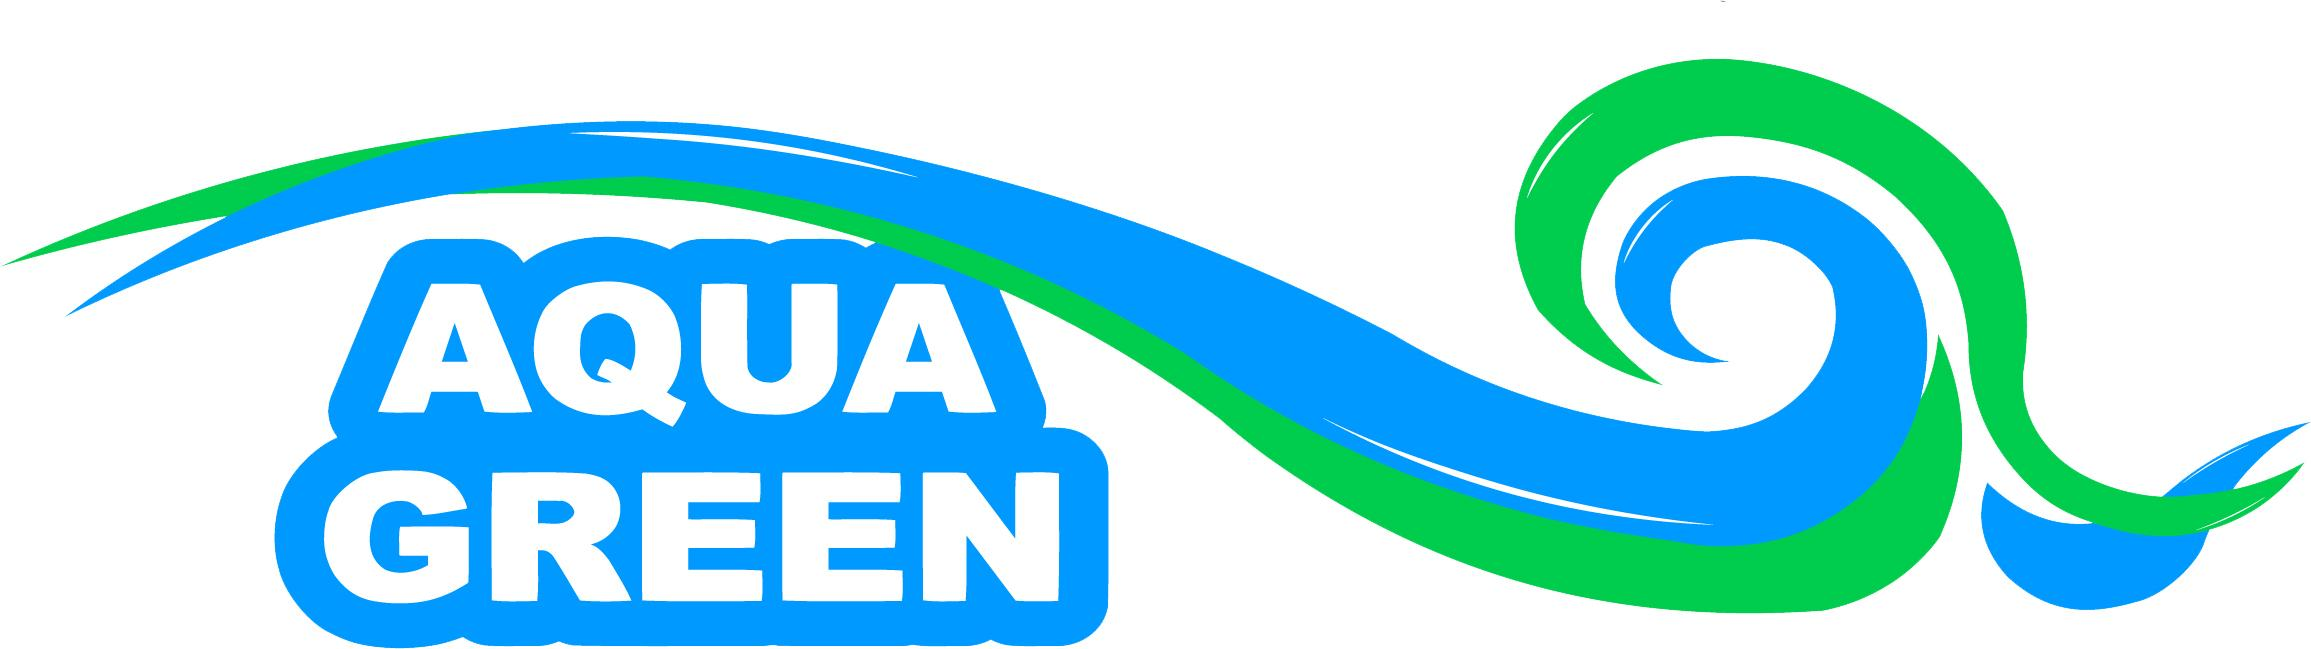 aquagreen logo_1_9_1